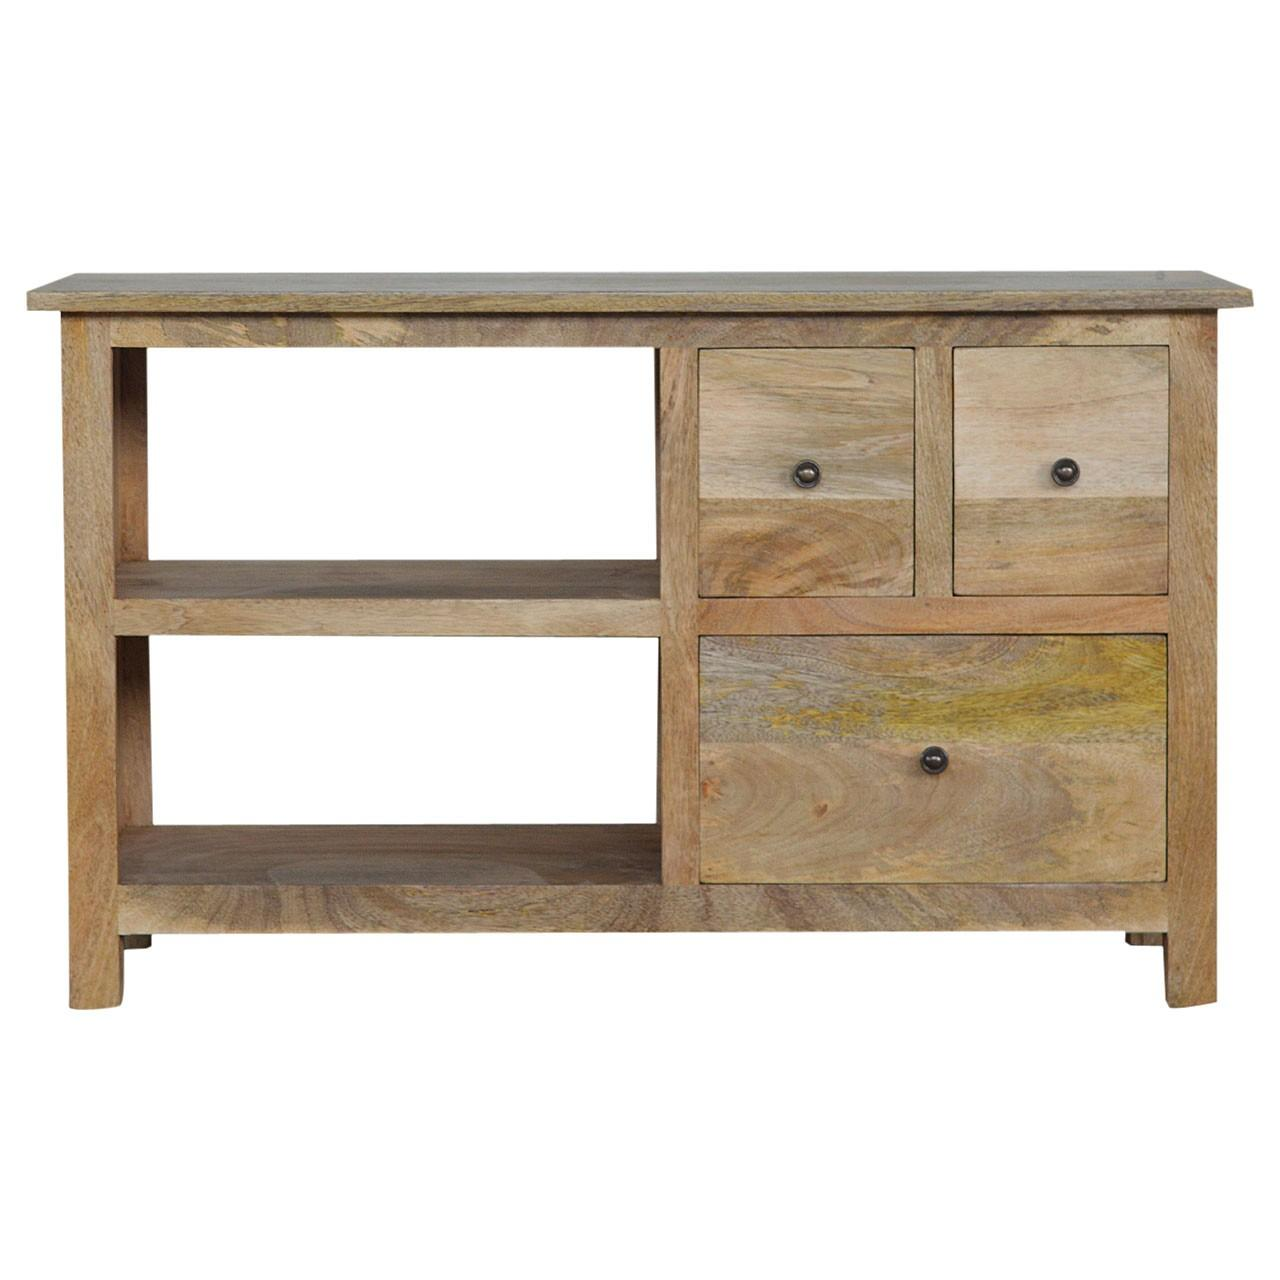 TV Unit with 3 Drawers & 2 Shelves